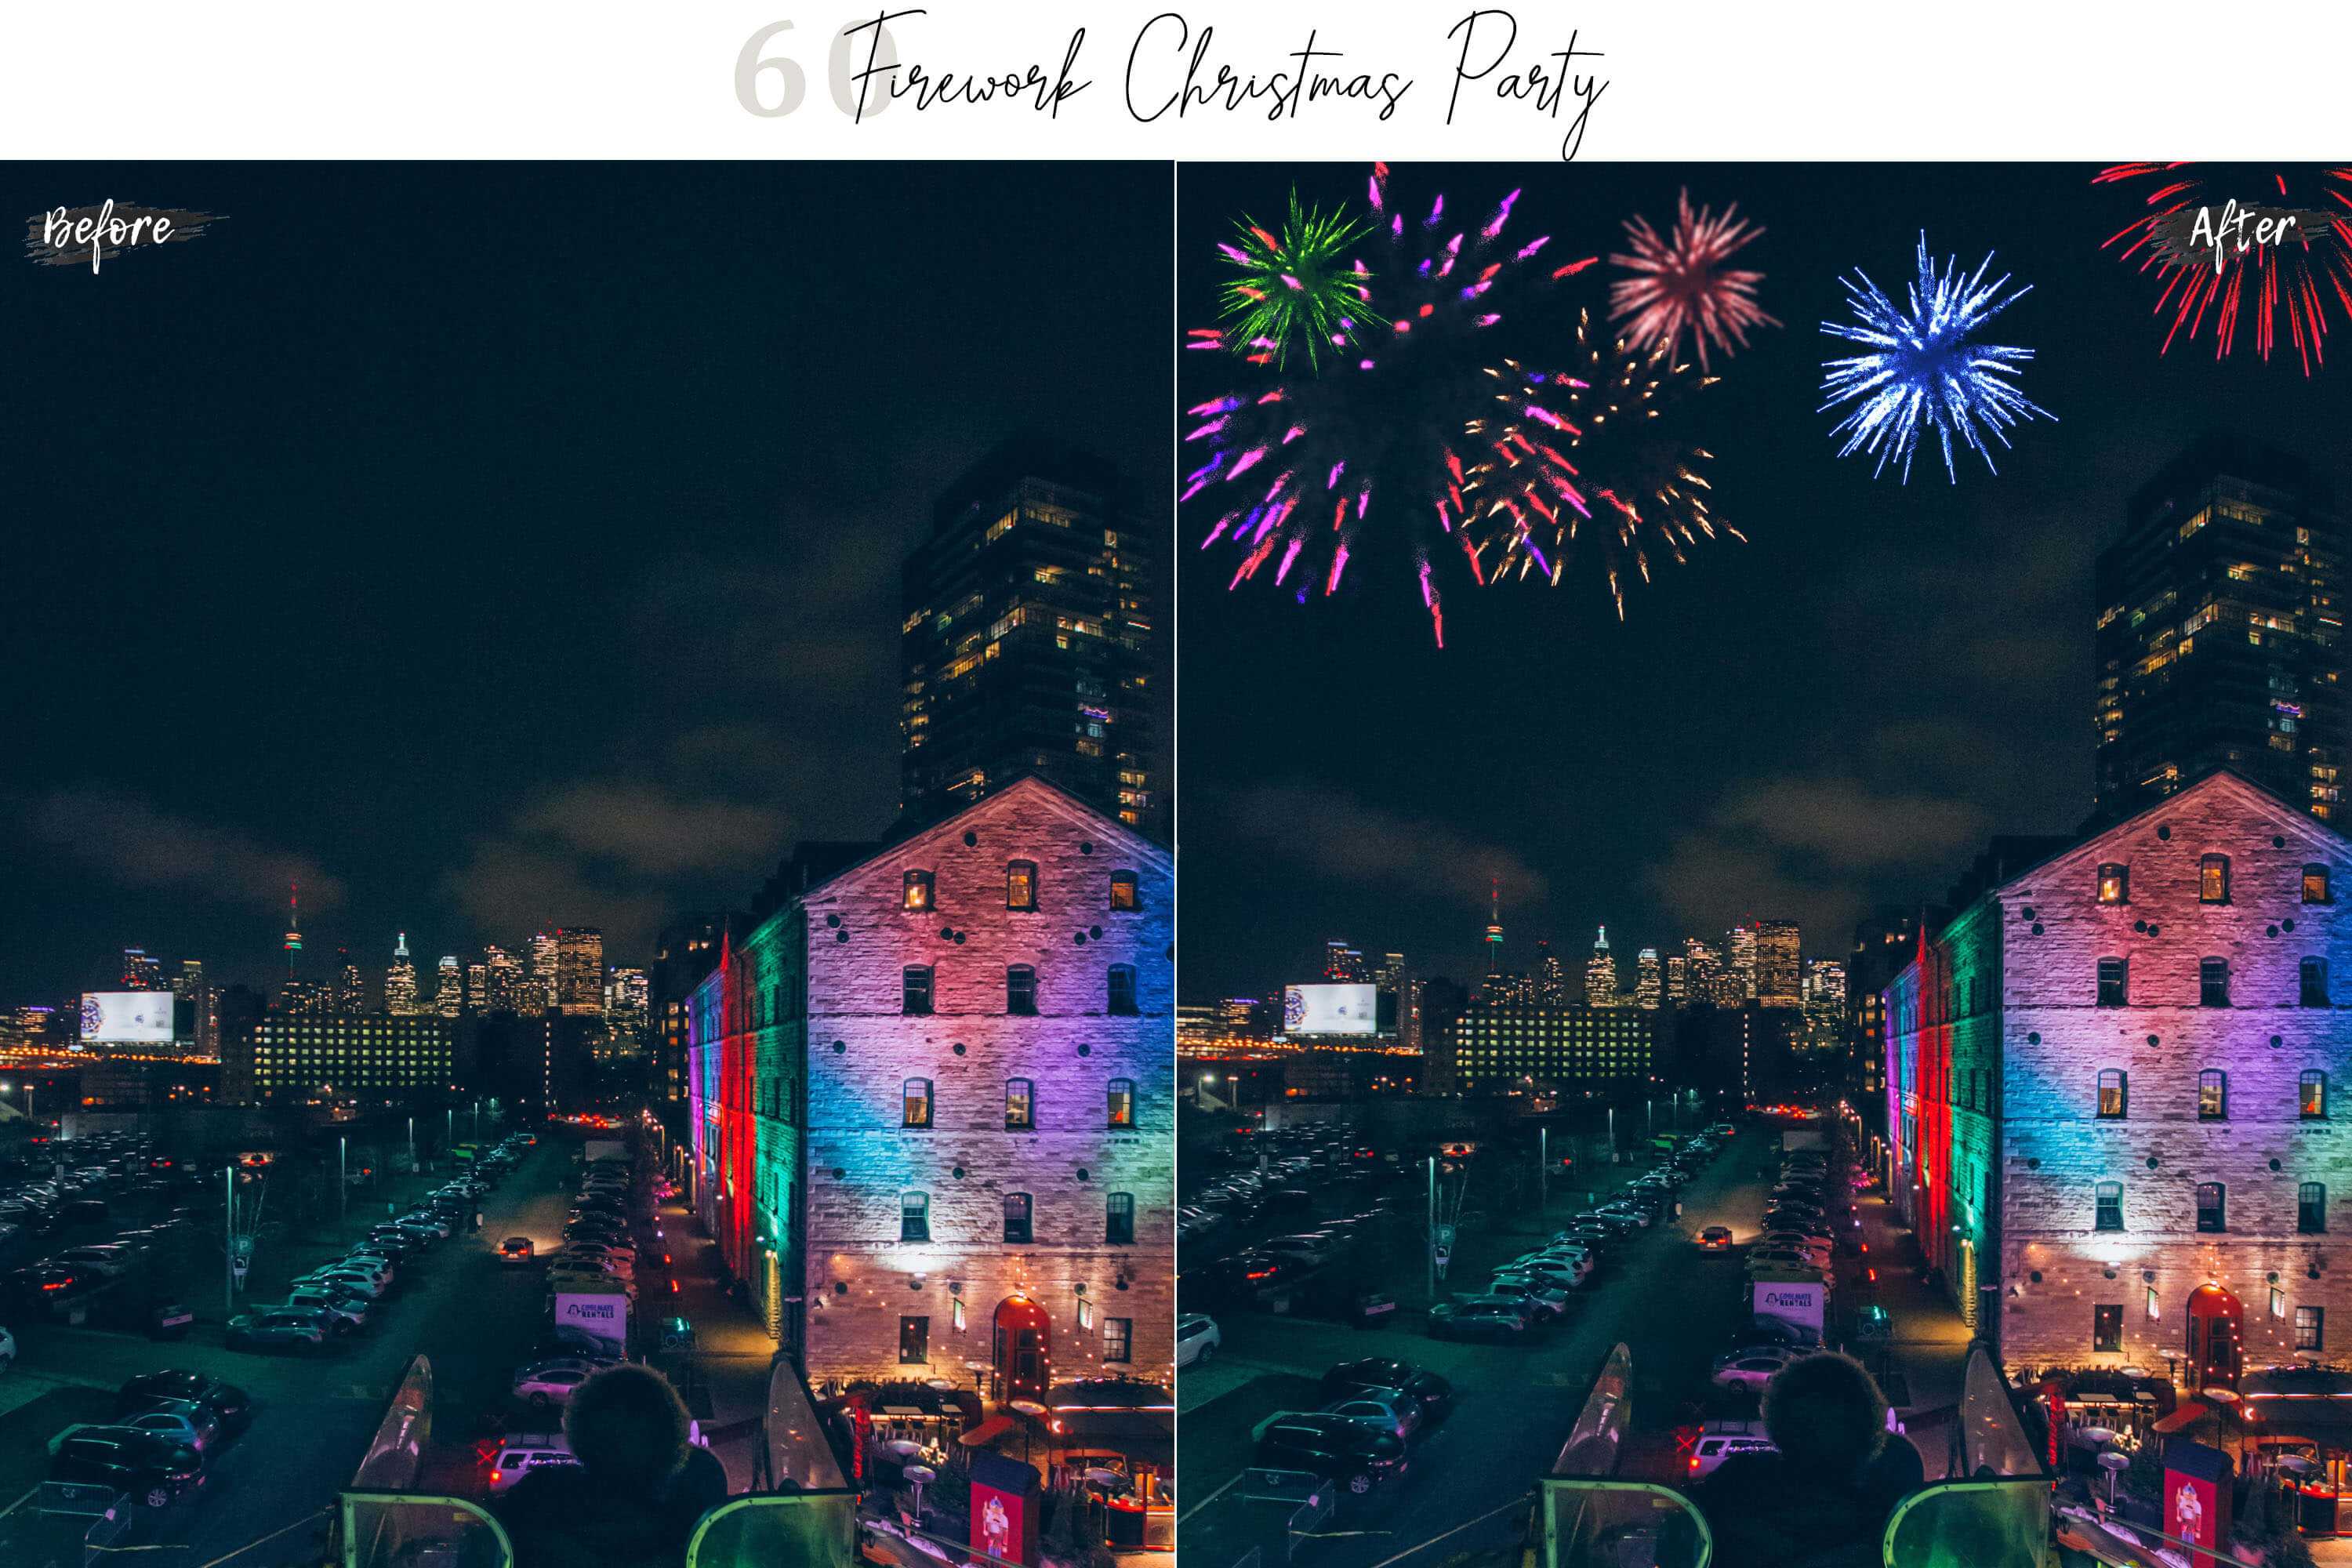 60 Firework Christmas Party Overlays example image 8